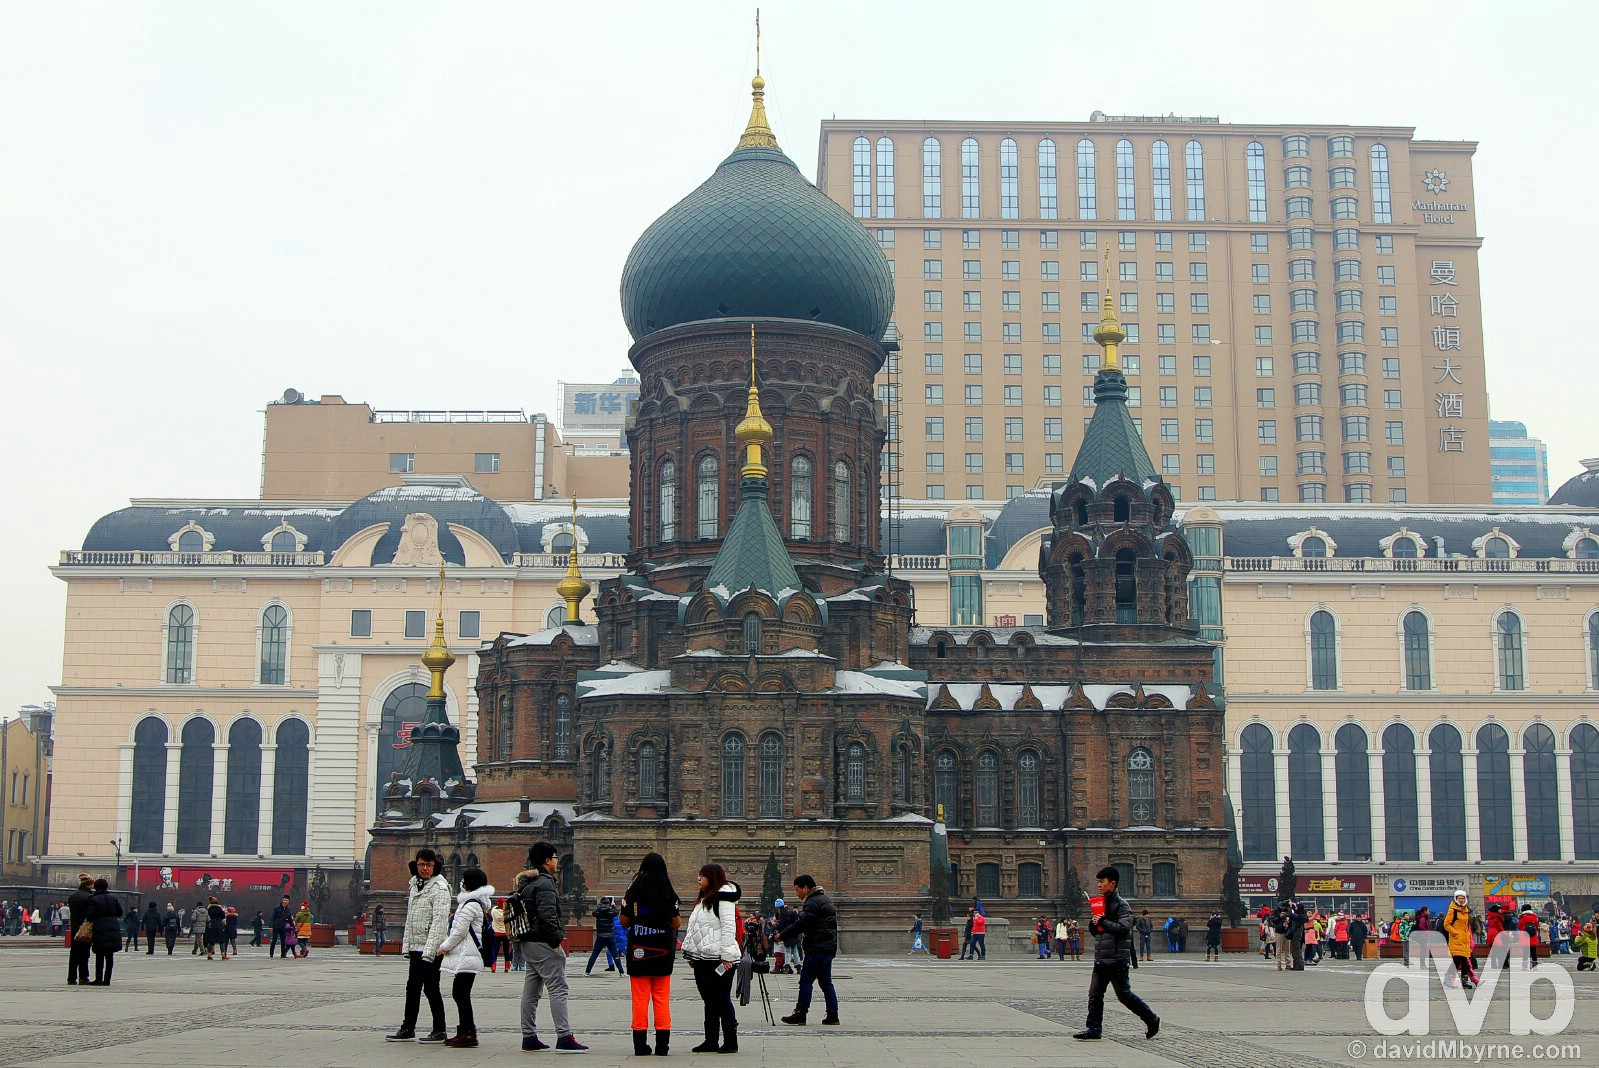 The Cathedral of the Holy Wisdom of God, a.k.a. the Russian Orthodox cathedral or formally St. Sofia's, in Harbin, China. February 6, 2015.